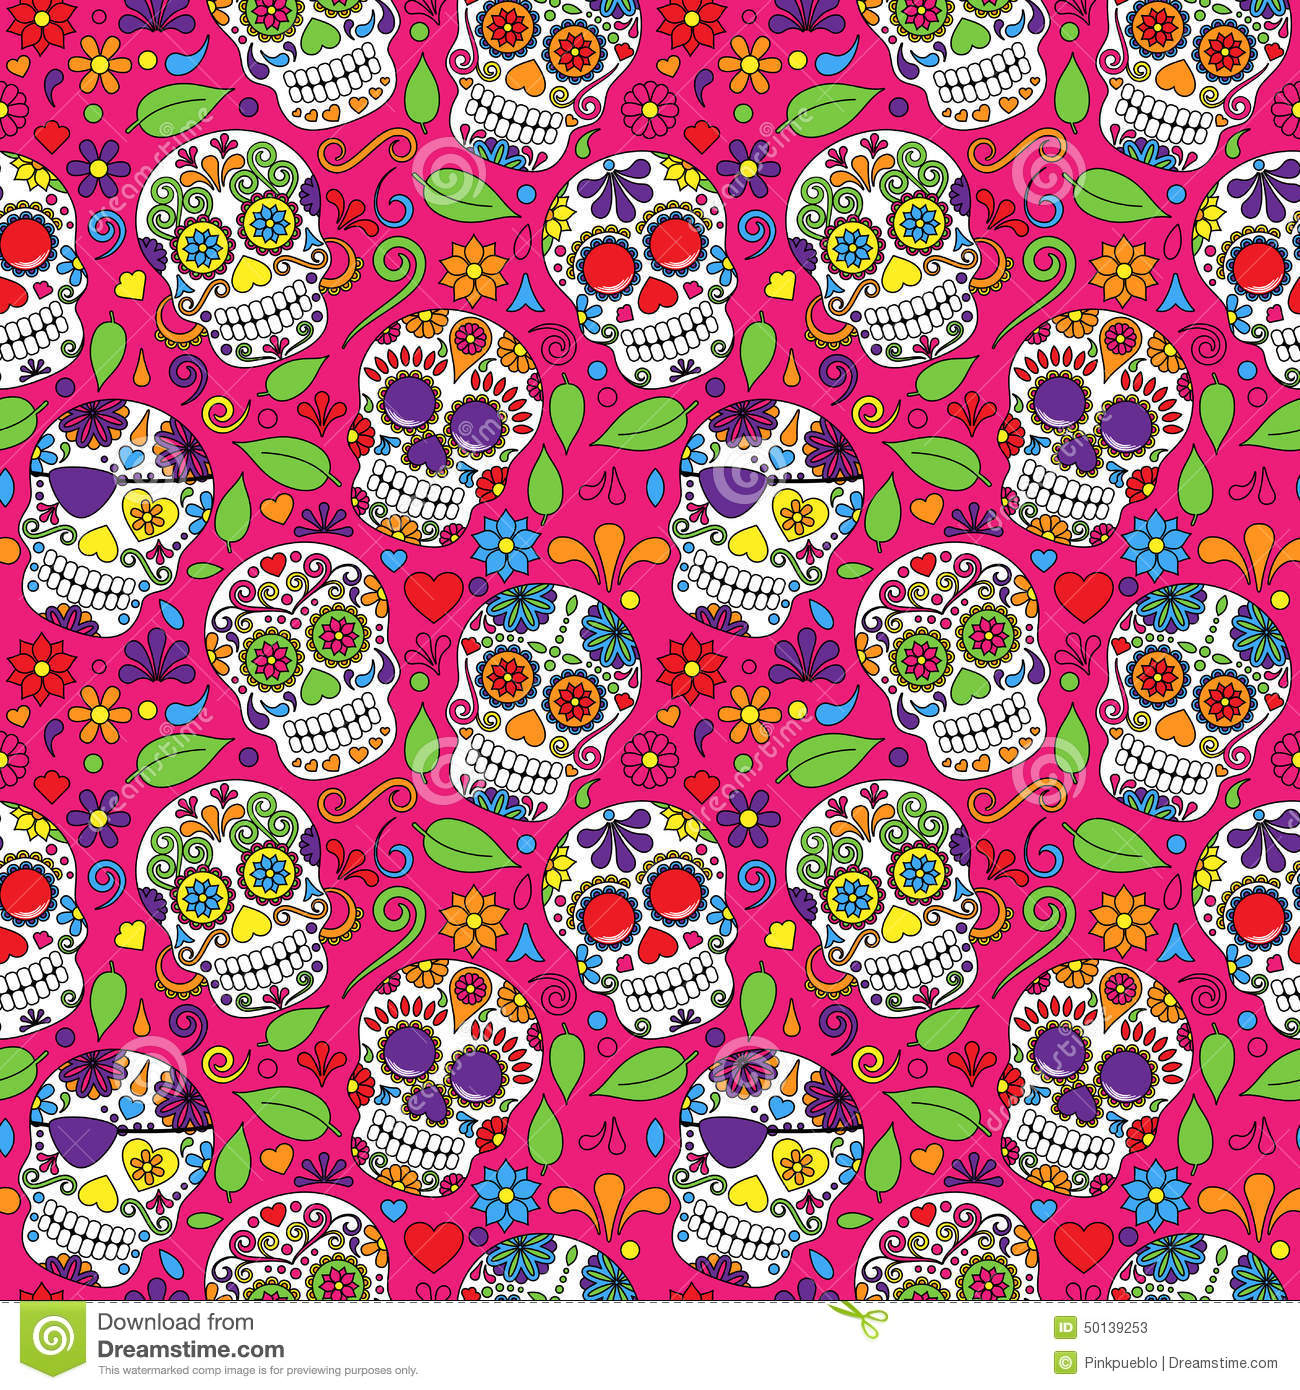 Cute Dia De Los Muertos Wallpaper Day Of The Dead Sugar Skull Seamless Vector Background